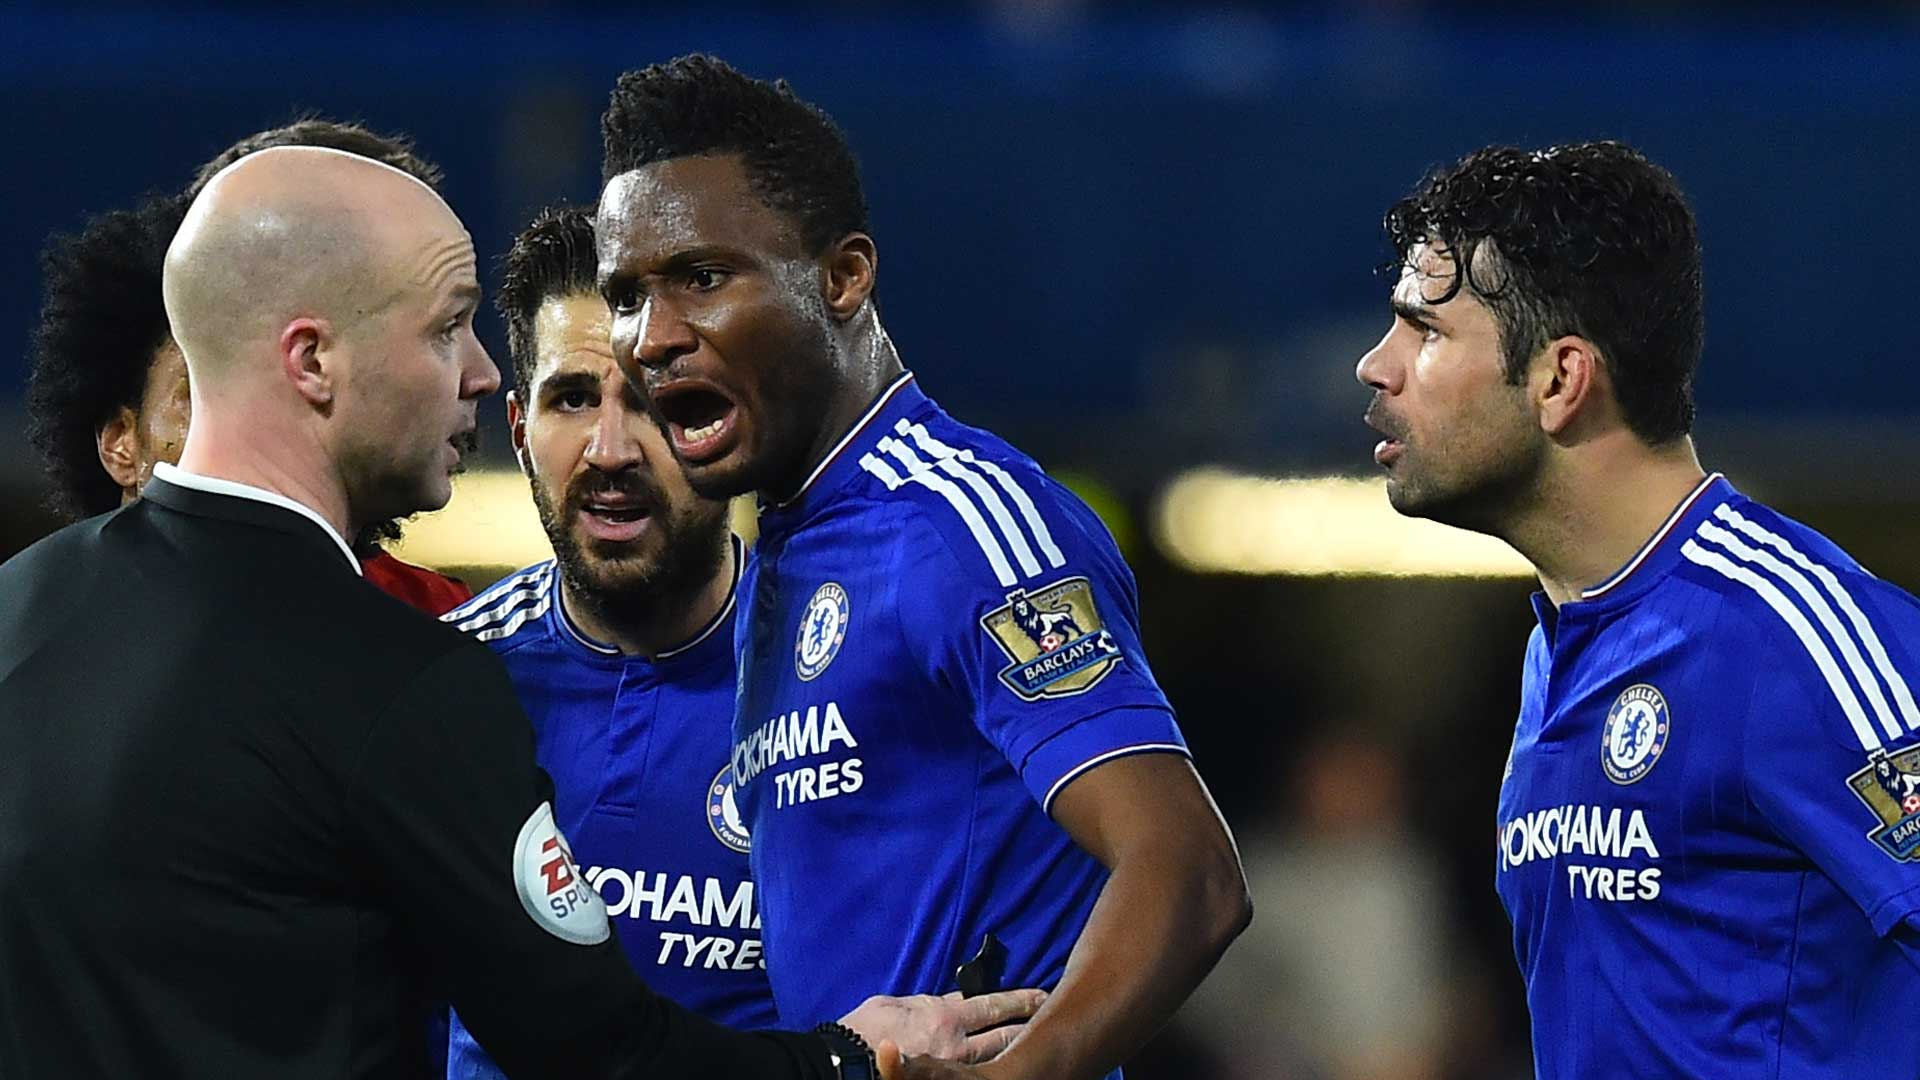 No Chelsea talks over new Mikel deal, says Conte